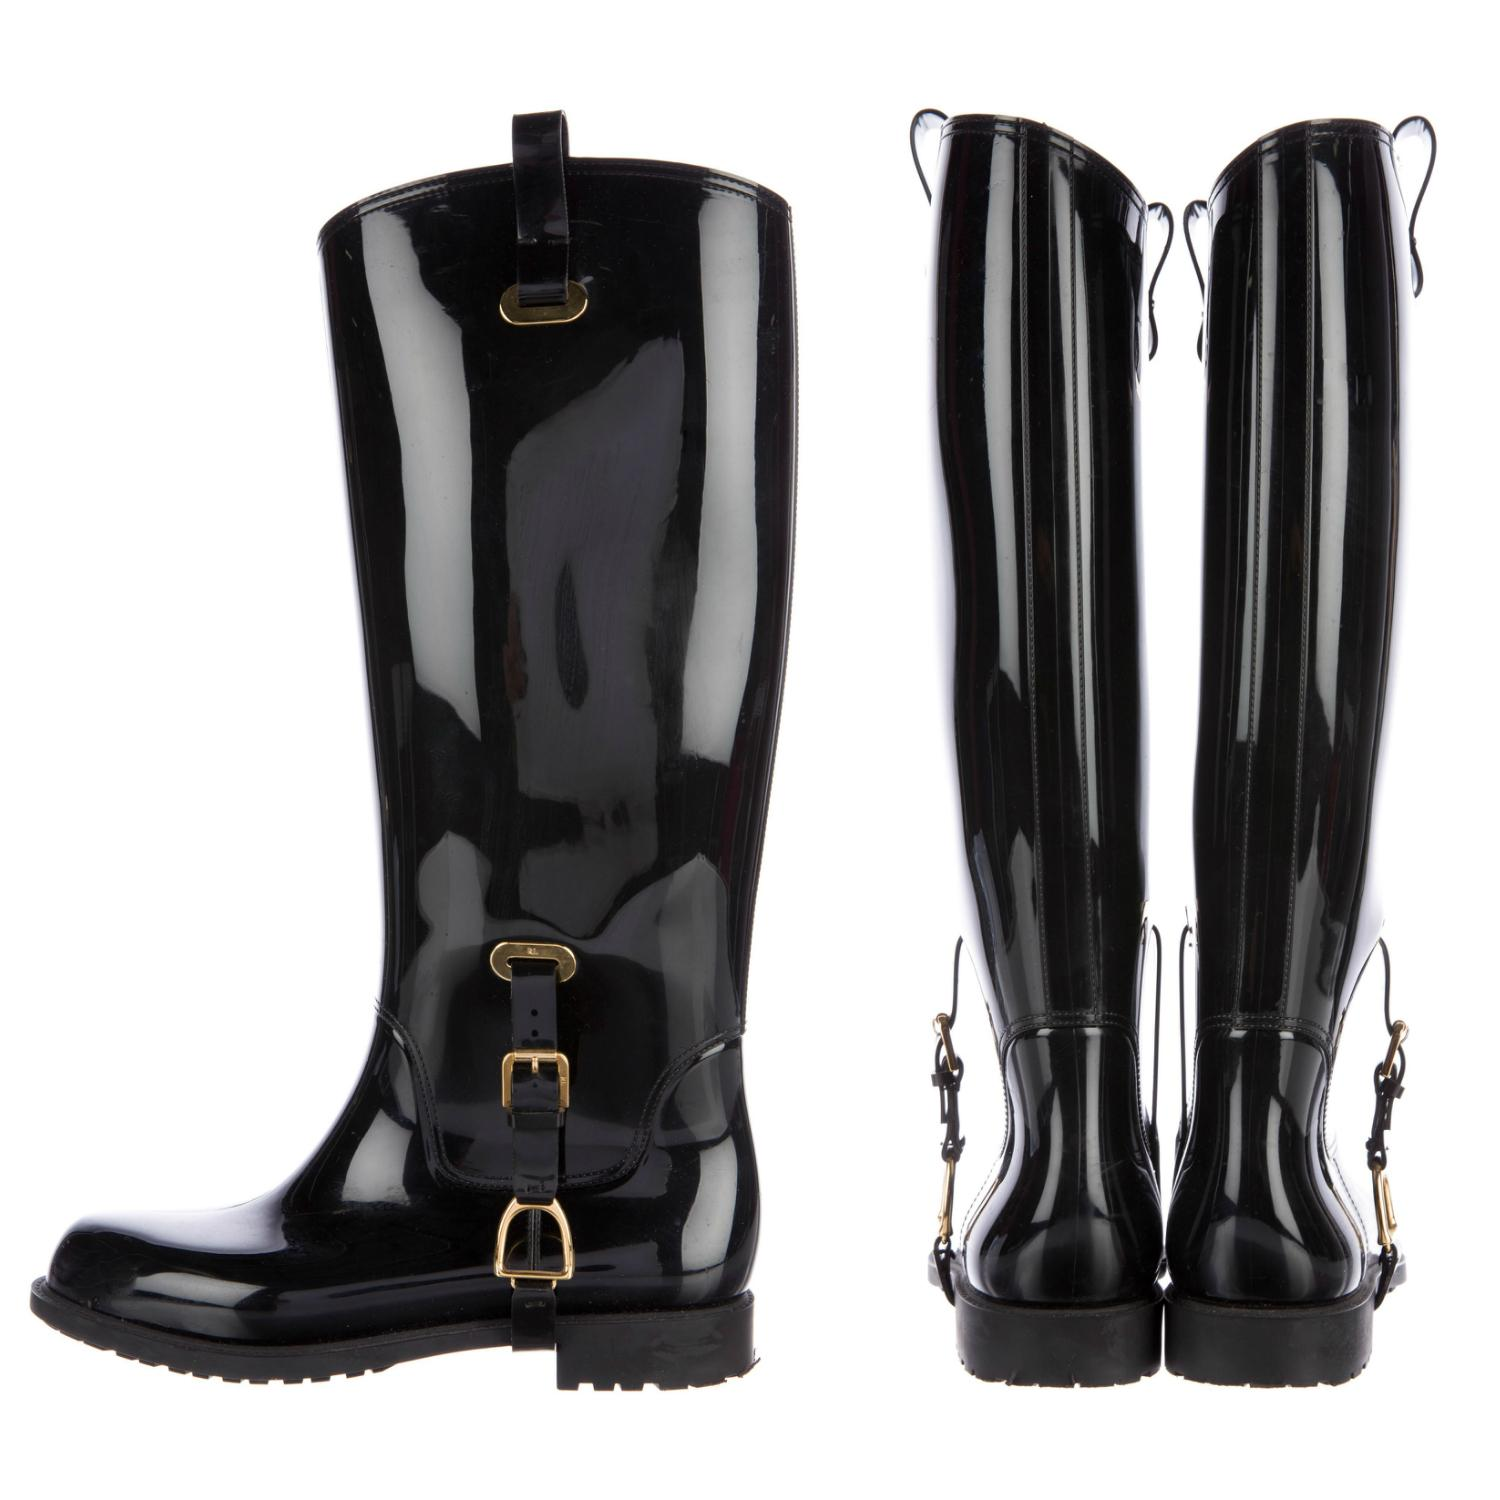 Ralph Lauren Collection New Fully Insulated Black Label Riding Rain Boots/Booties Size US 7.5 Regular (M, B)